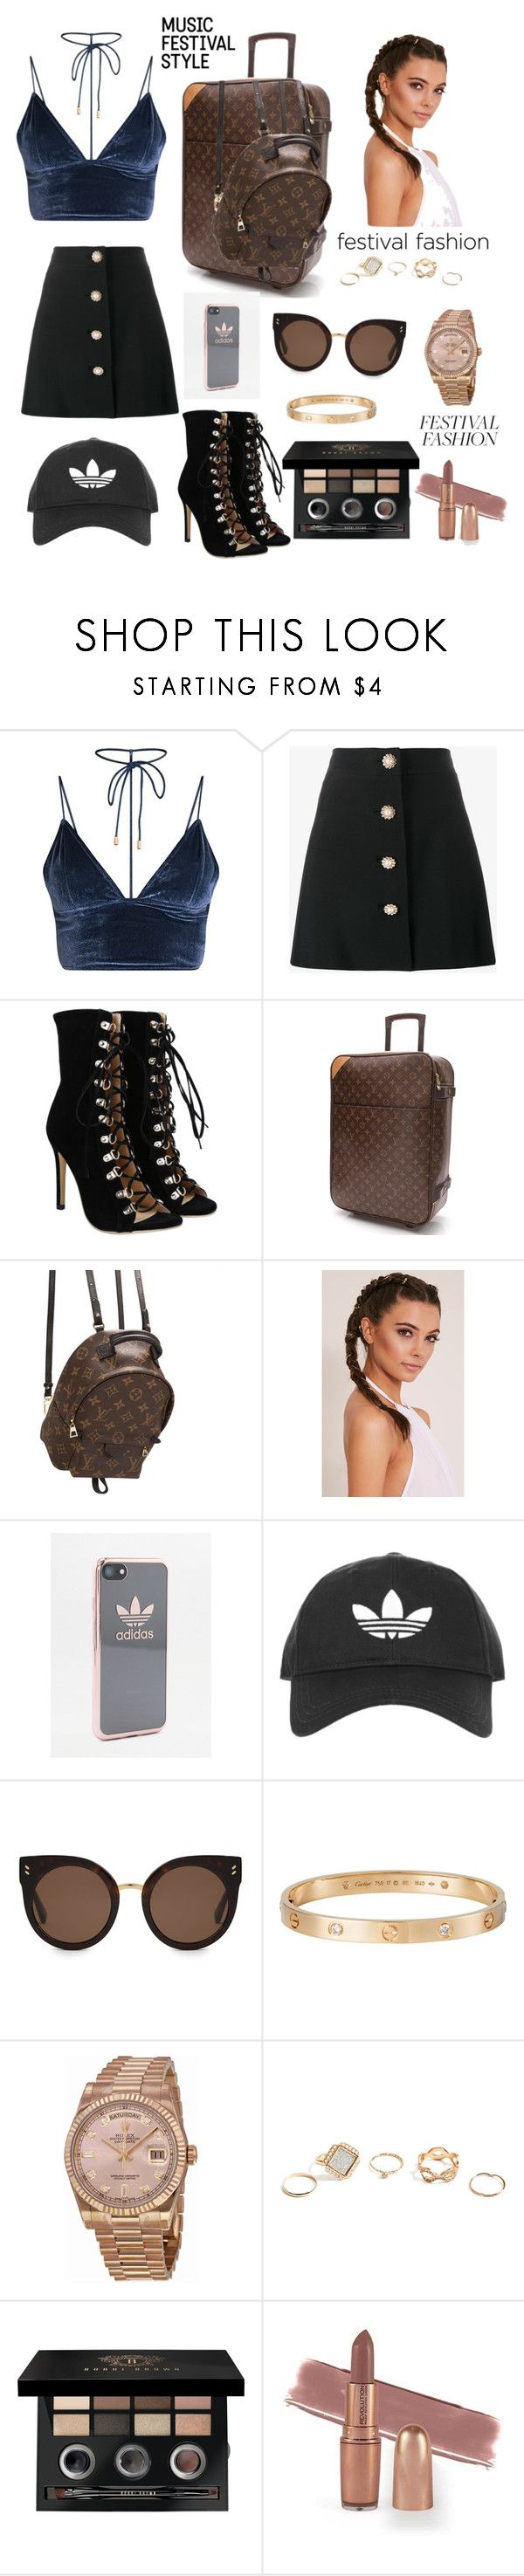 """""""Coachella 2017"""" by maxtonbez ❤ liked on Polyvore featuring Miu Miu, Louis Vuitton, adidas, Topshop, STELLA McCARTNEY, Cartier, Rolex, GUESS and Bobbi Brown Cosmetics"""